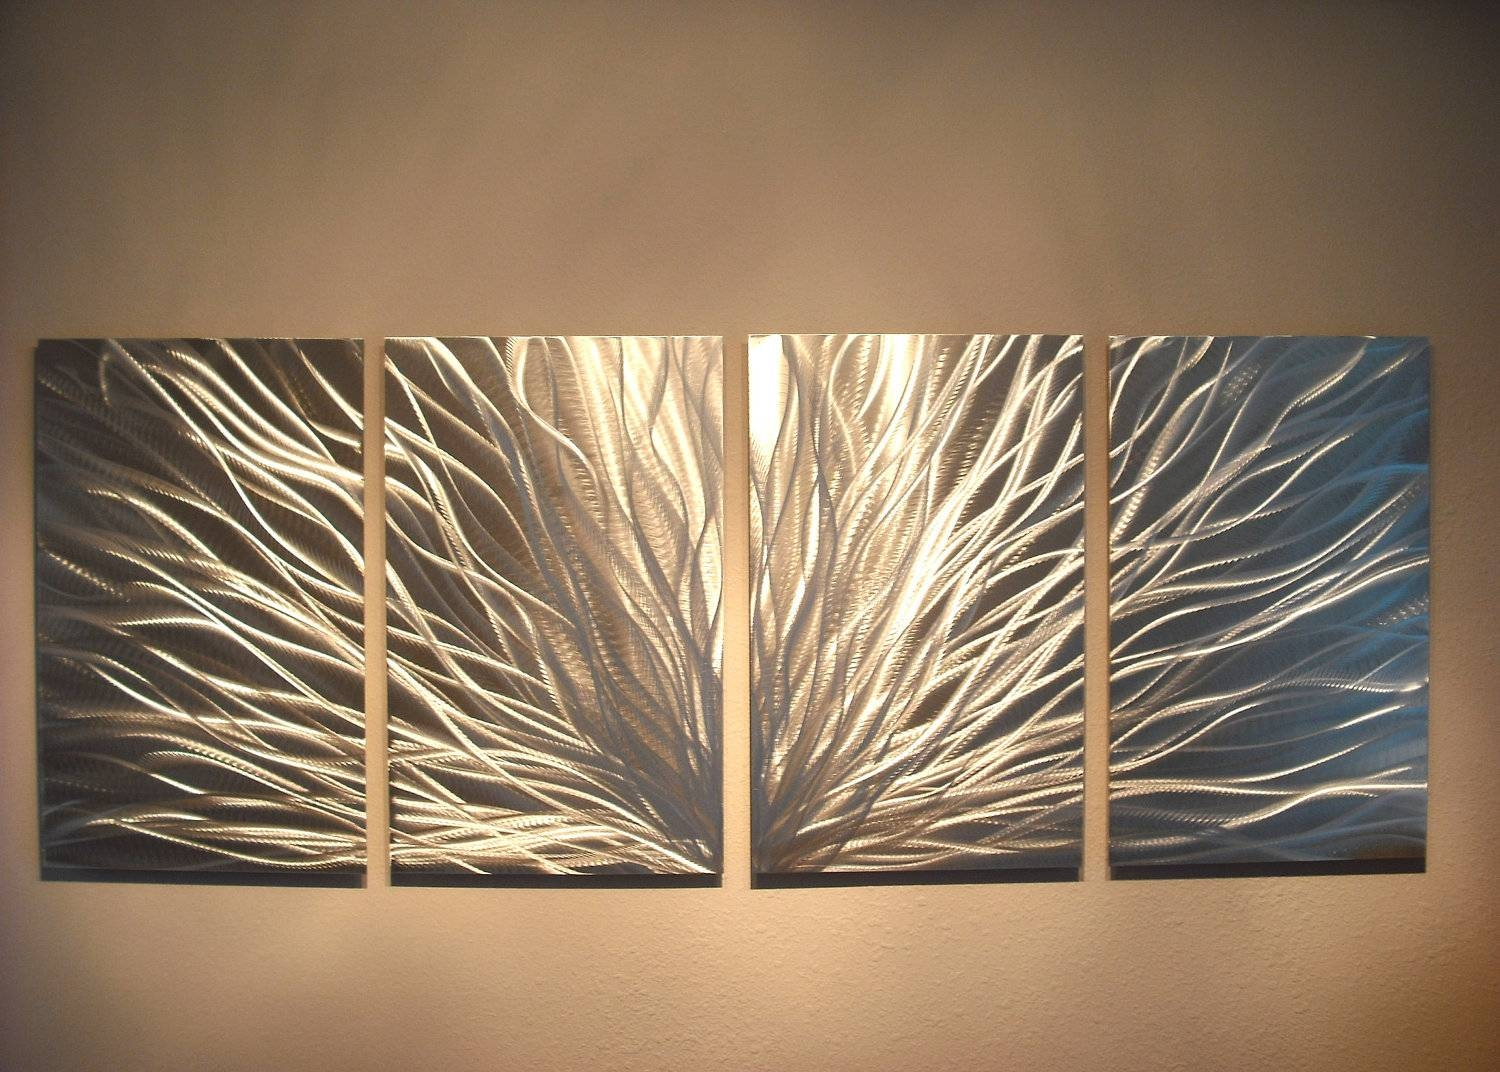 Radiance – Abstract Metal Wall Art Contemporary Modern Decor Throughout Best And Newest Large Metal Wall Art Sculptures (View 3 of 20)